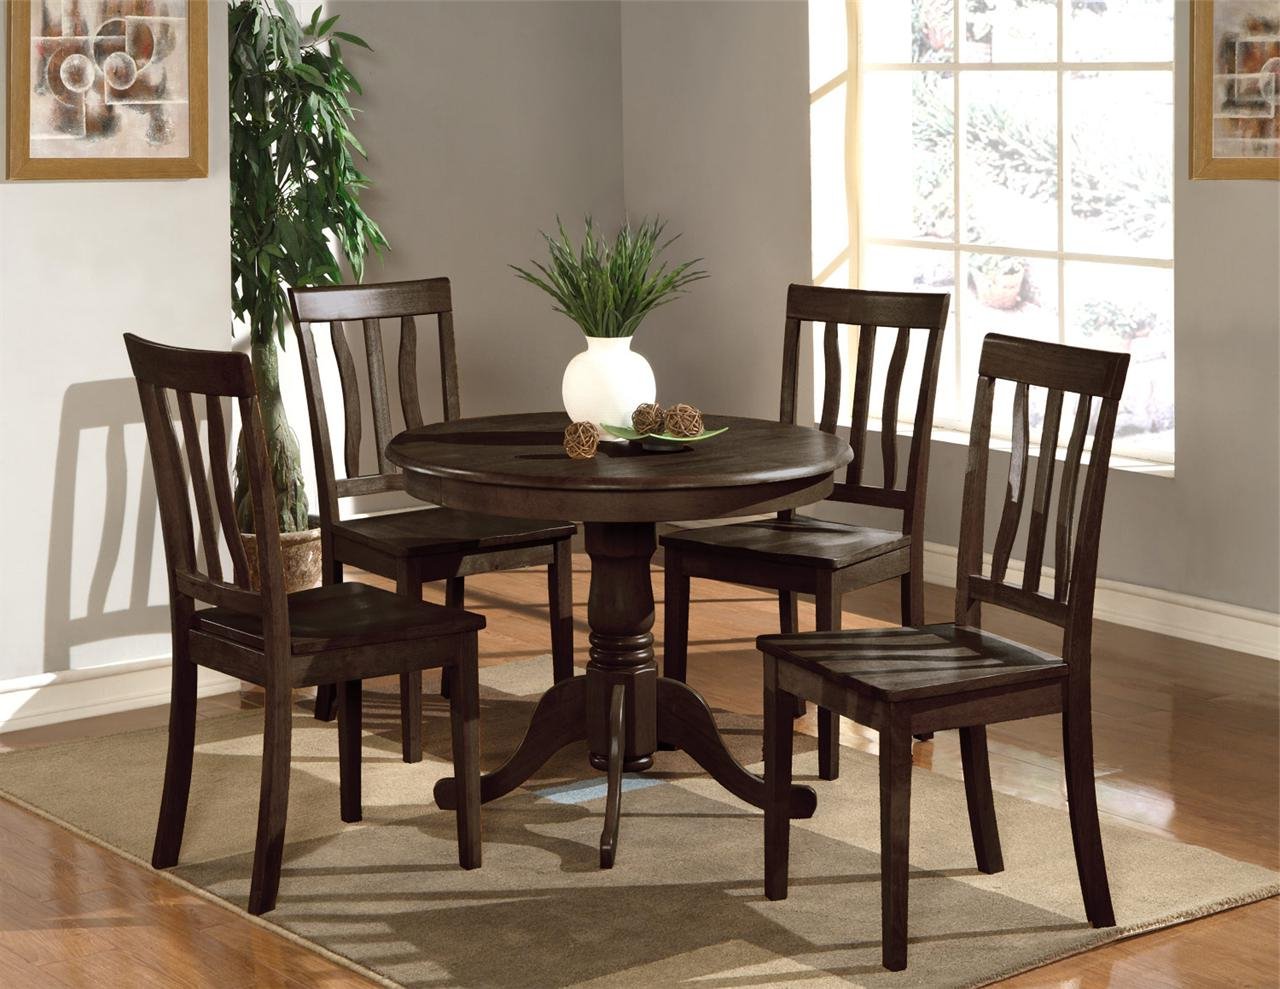 Elegance Small Round Dining Tables In Most Recently Released Kitchen Round Table Sets Amazing Elegant Small And Chairs (View 29 of 30)